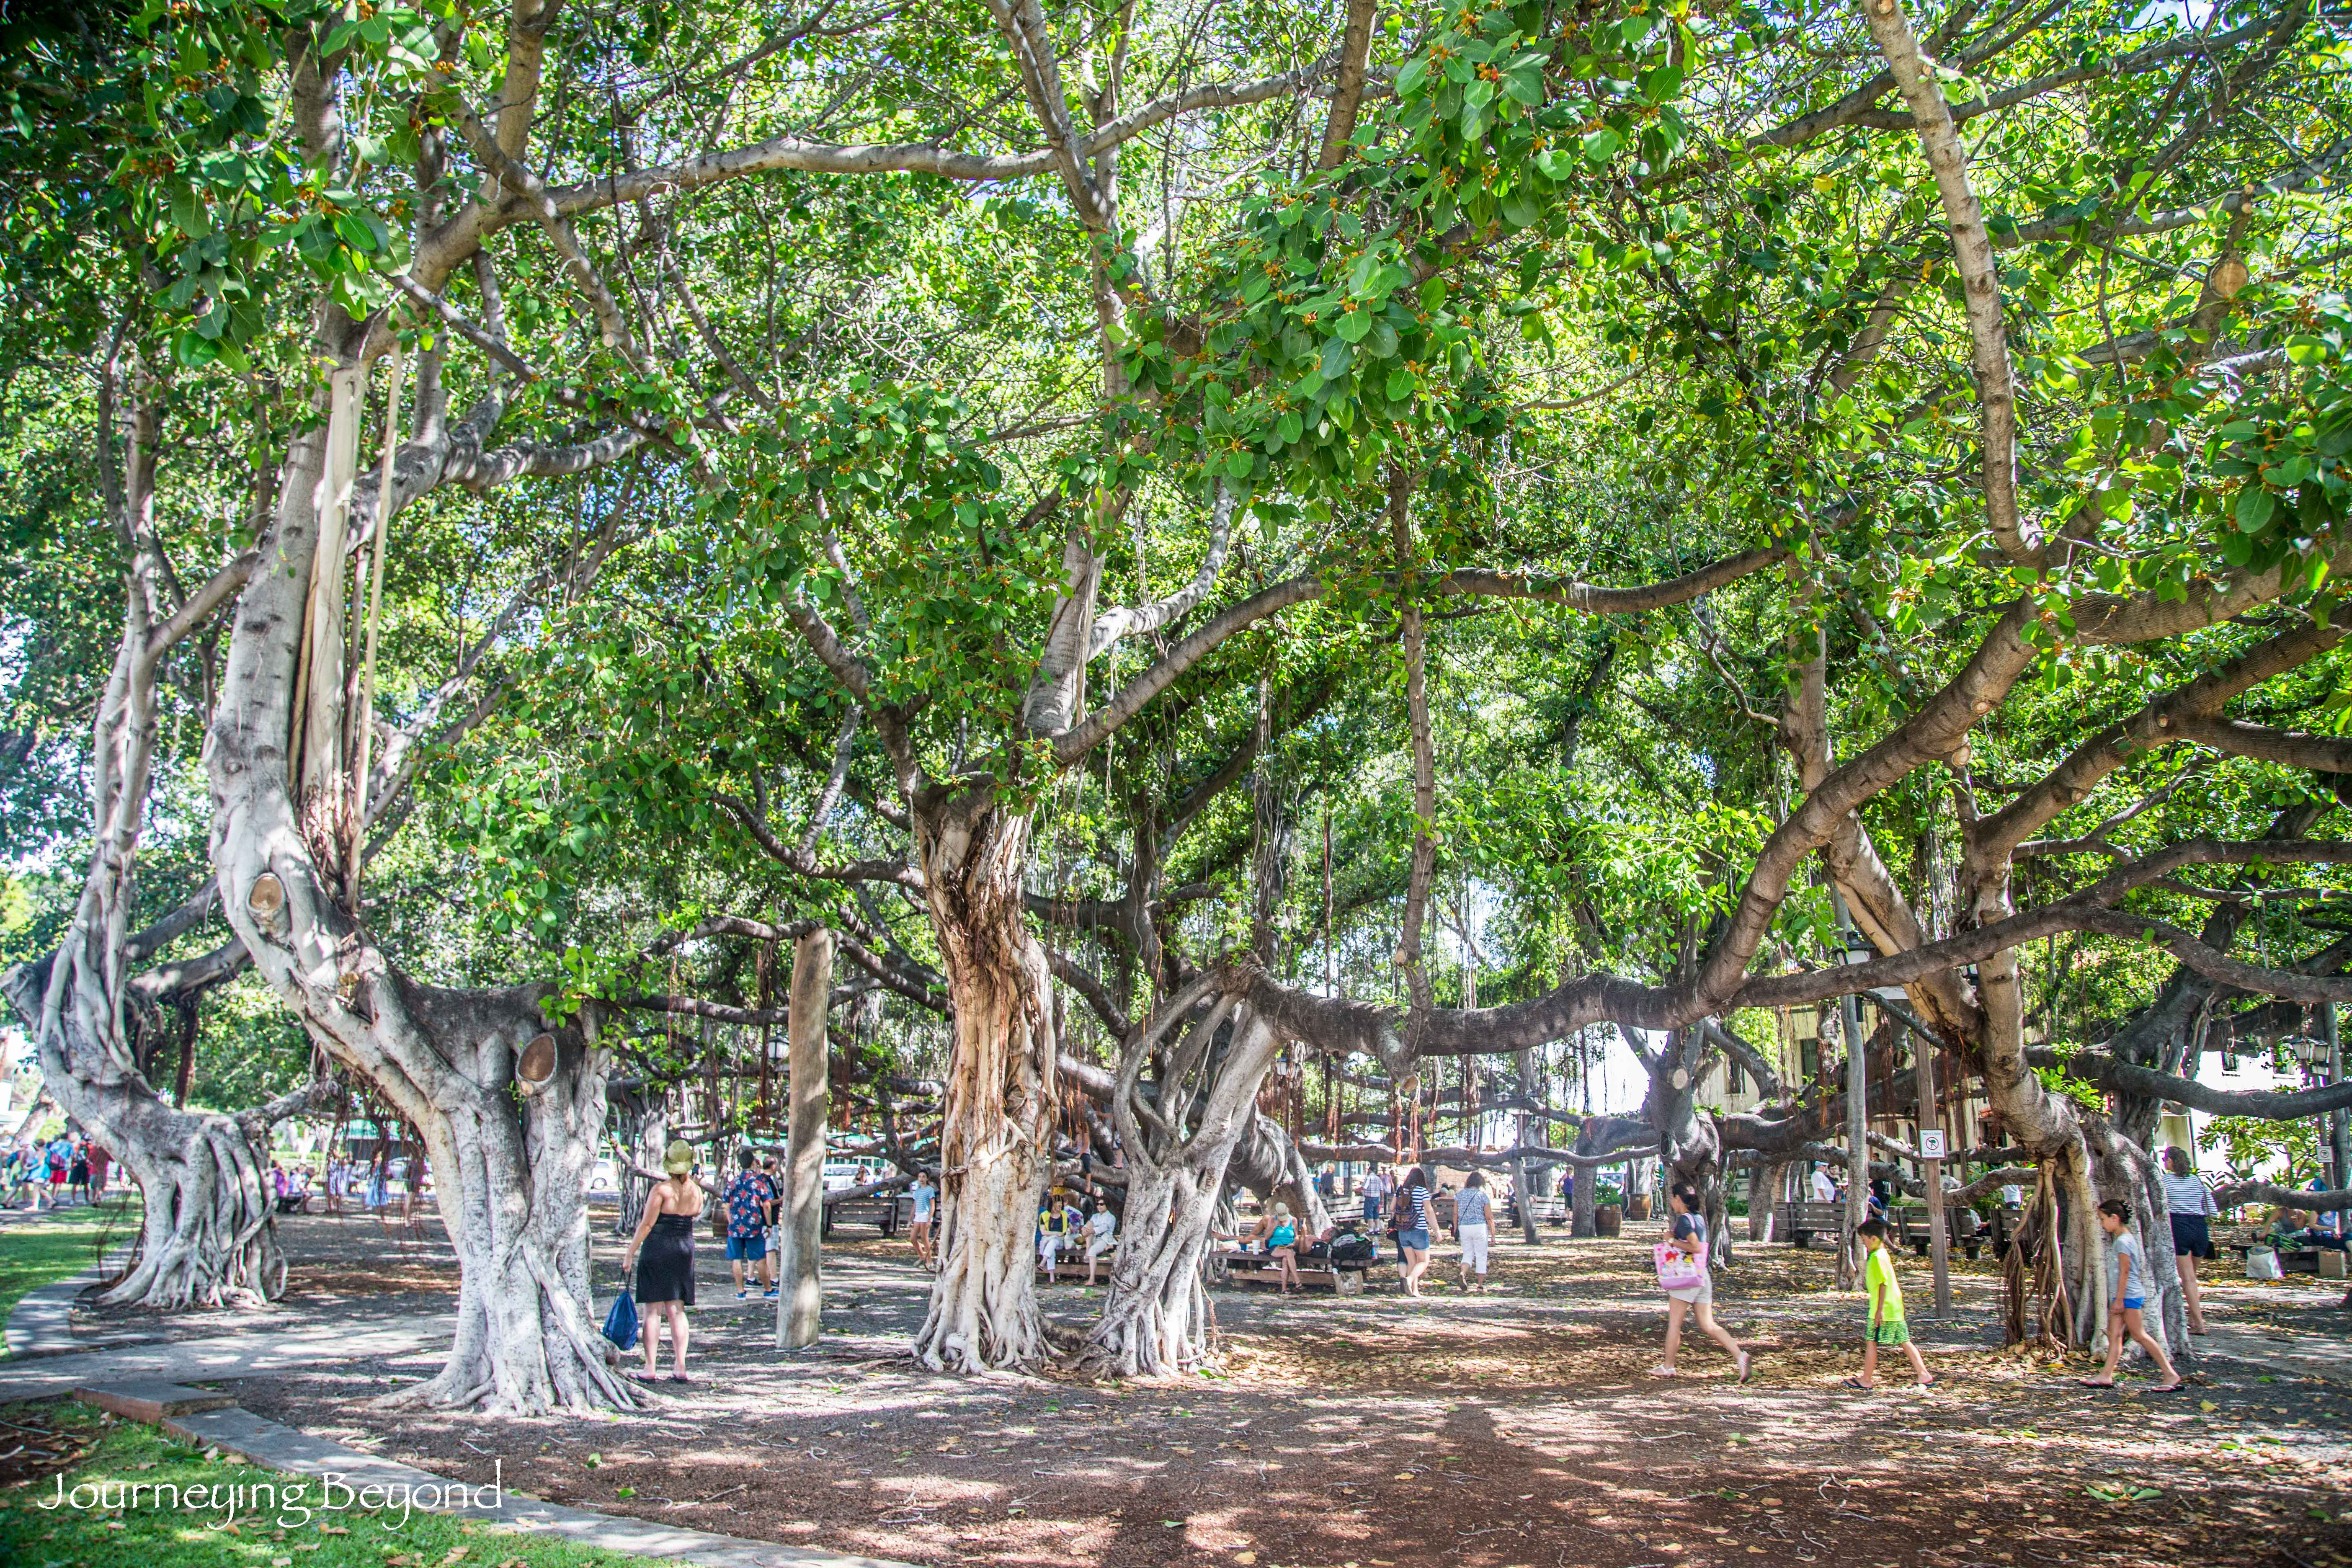 banyan tree essay A banyan, also spelled banian, is a fig that begins its life as an epiphyte, i e a plant that grows on another plant, when its seed germinates in a crack or crevice of a host tree or edifice.